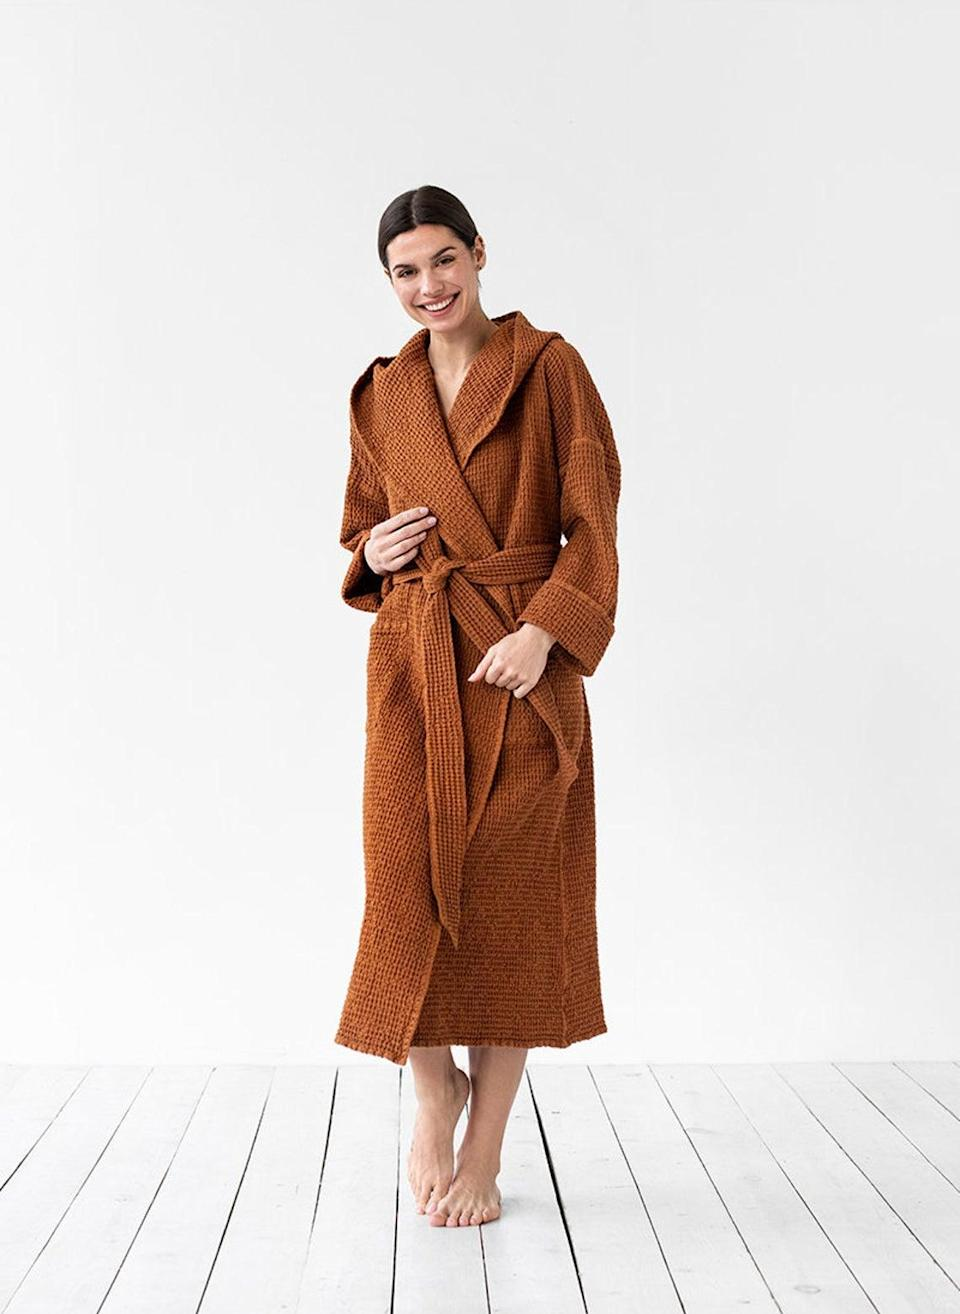 "<h3><a href=""https://www.etsy.com/listing/696119483/womens-waffle-linen-bath-robe-unisex"" rel=""nofollow noopener"" target=""_blank"" data-ylk=""slk:MagicLinen Linen Waffle Bathrobe"" class=""link rapid-noclick-resp"">MagicLinen Linen Waffle Bathrobe</a></h3> <br>Simple waffle weave meets luxurious stone-washed linen and elopes in glamorous oversized fashion — and here's what the critics are saying: ""It is stunning! It fits perfectly. It is very elegant and comfortable. I highly recommend buying this robe.""<br><br><strong>MagicLinen</strong> Stonewashed Linen Waffle Bathrobe, $, available at <a href=""https://go.skimresources.com/?id=30283X879131&url=https%3A%2F%2Fwww.etsy.com%2Flisting%2F696119483%2Fwomens-waffle-linen-bath-robe-unisex"" rel=""nofollow noopener"" target=""_blank"" data-ylk=""slk:Etsy"" class=""link rapid-noclick-resp"">Etsy</a><br>"